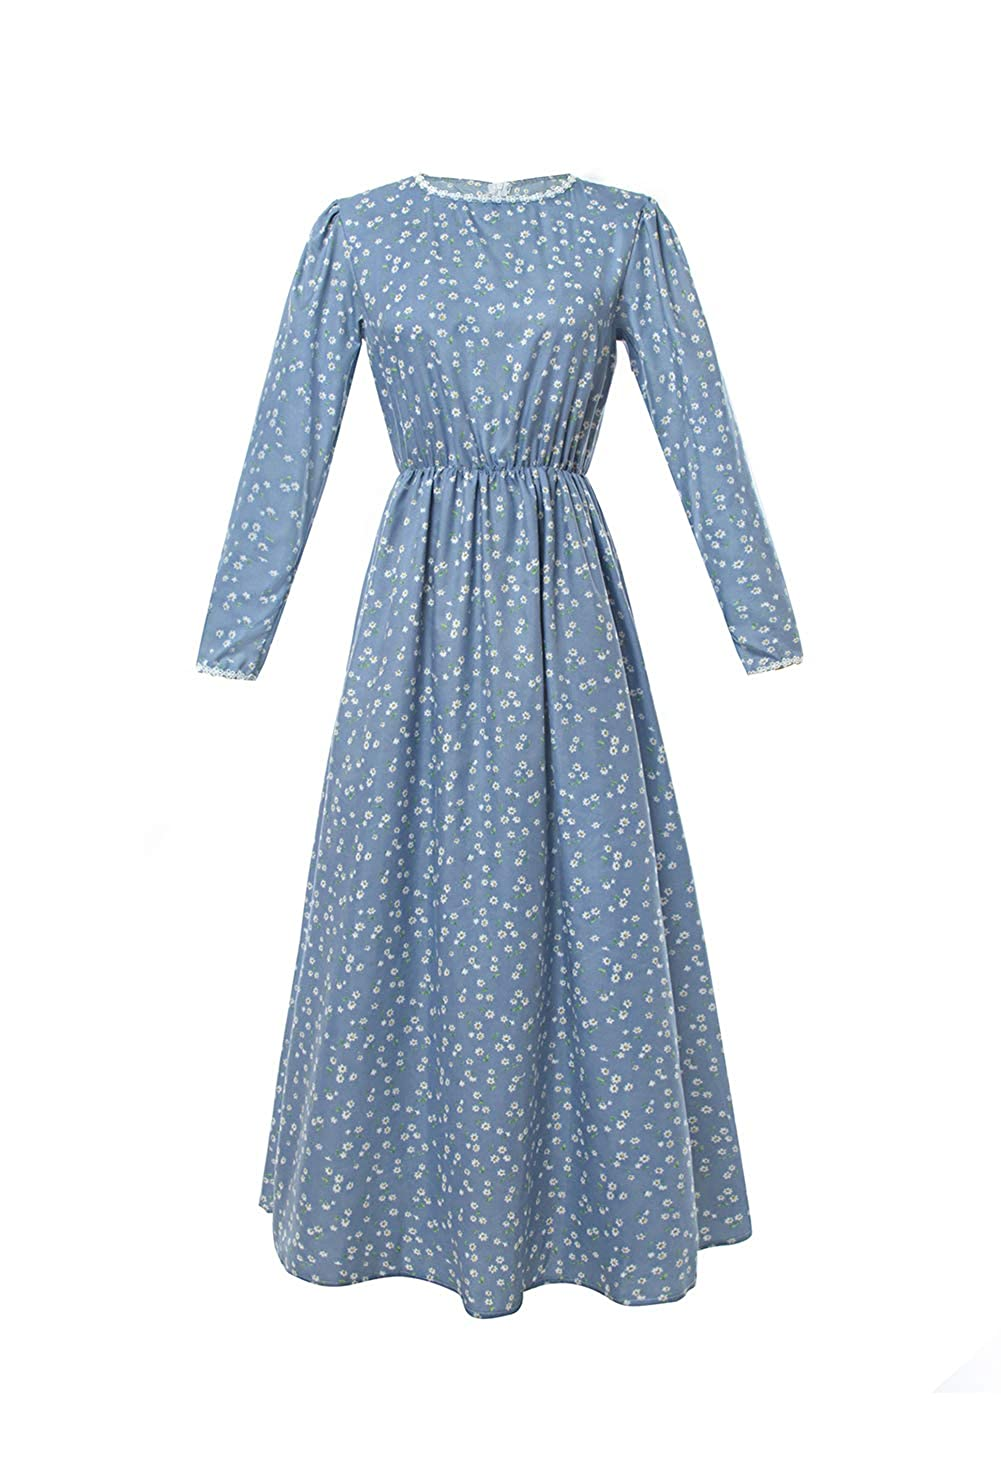 Victorian Dresses | Victorian Ballgowns | Victorian Clothing 1890-1915 Pioneer Women Costume Floral Prairie Dress Deluxe Colonial Dress Laura Ingalls Costume $35.99 AT vintagedancer.com